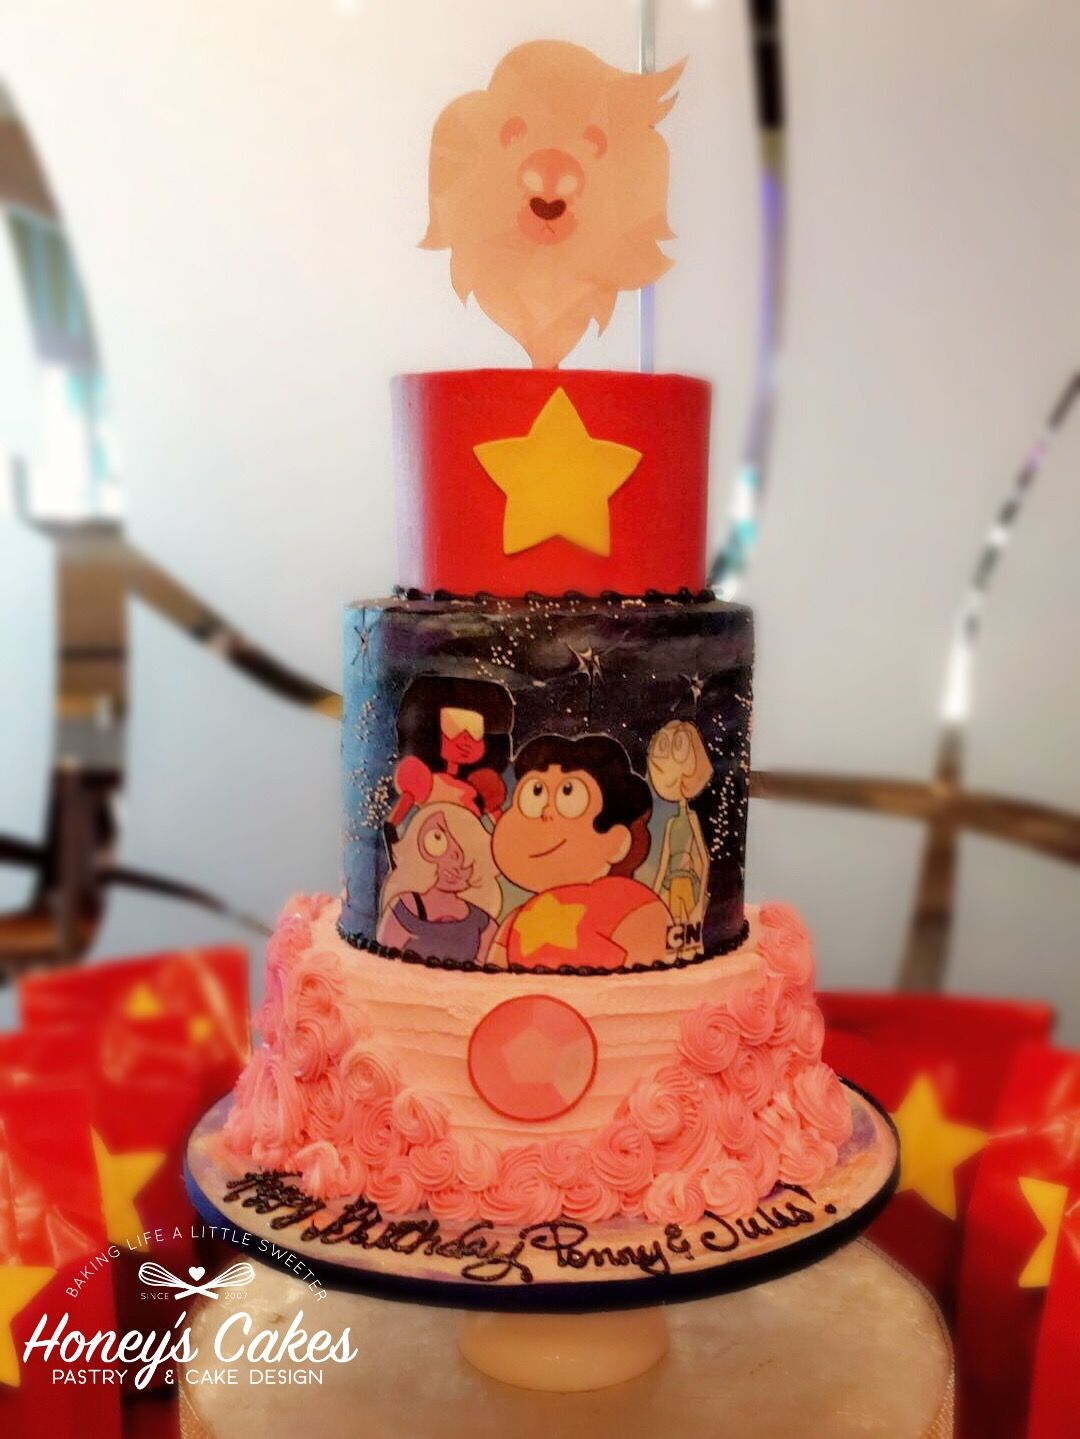 We Are The Crystal Gems Steven Universe Birthday Cake By